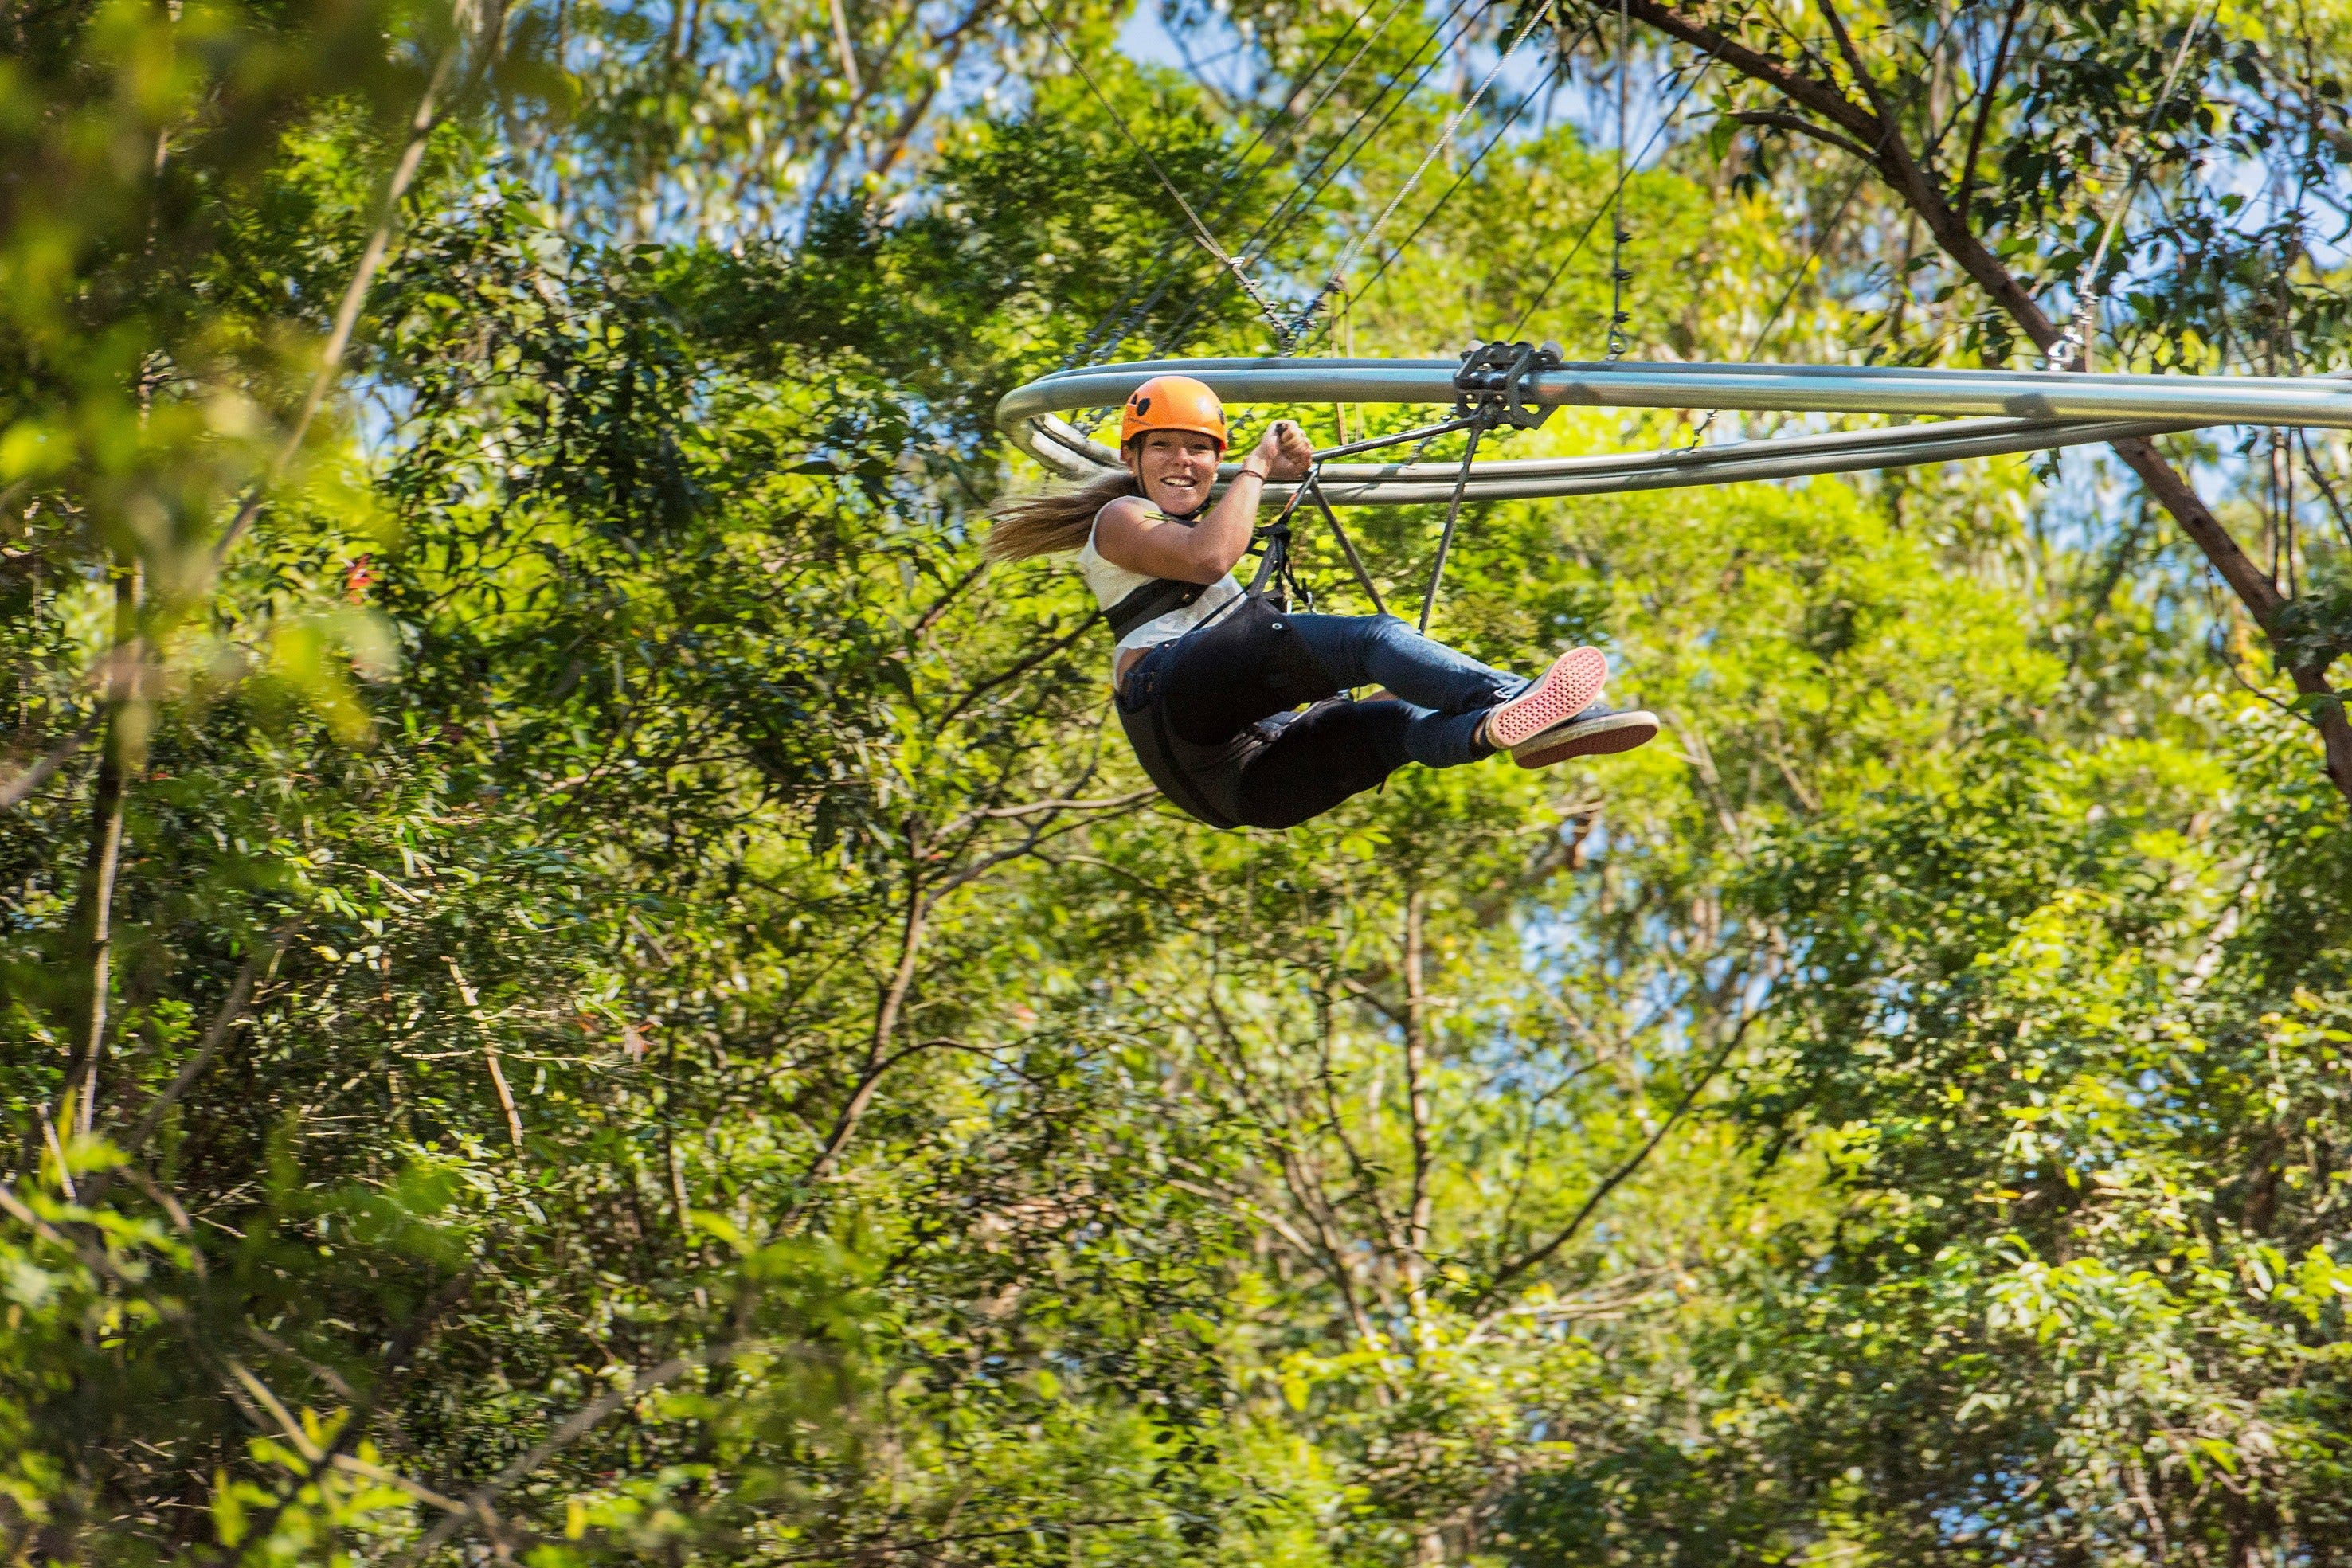 TreeTop Crazy Rider - Find Attractions